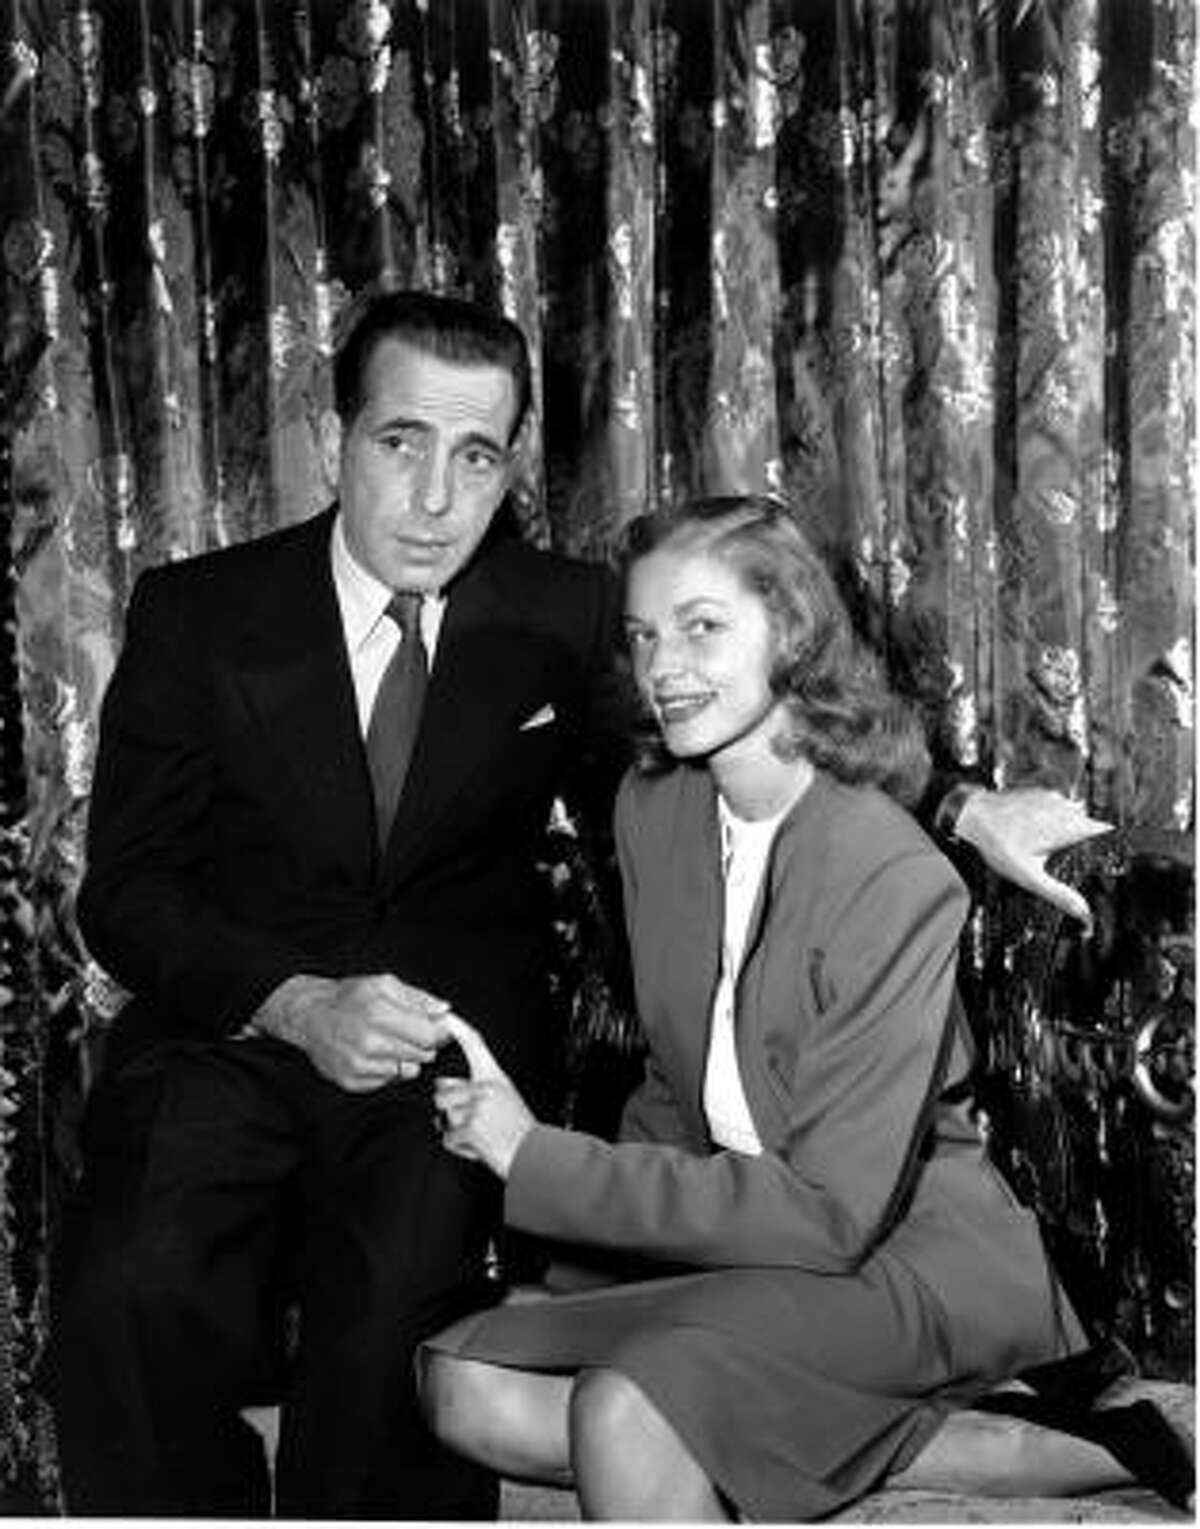 Humphrey Bogart and Lauren Bacall in 1945.